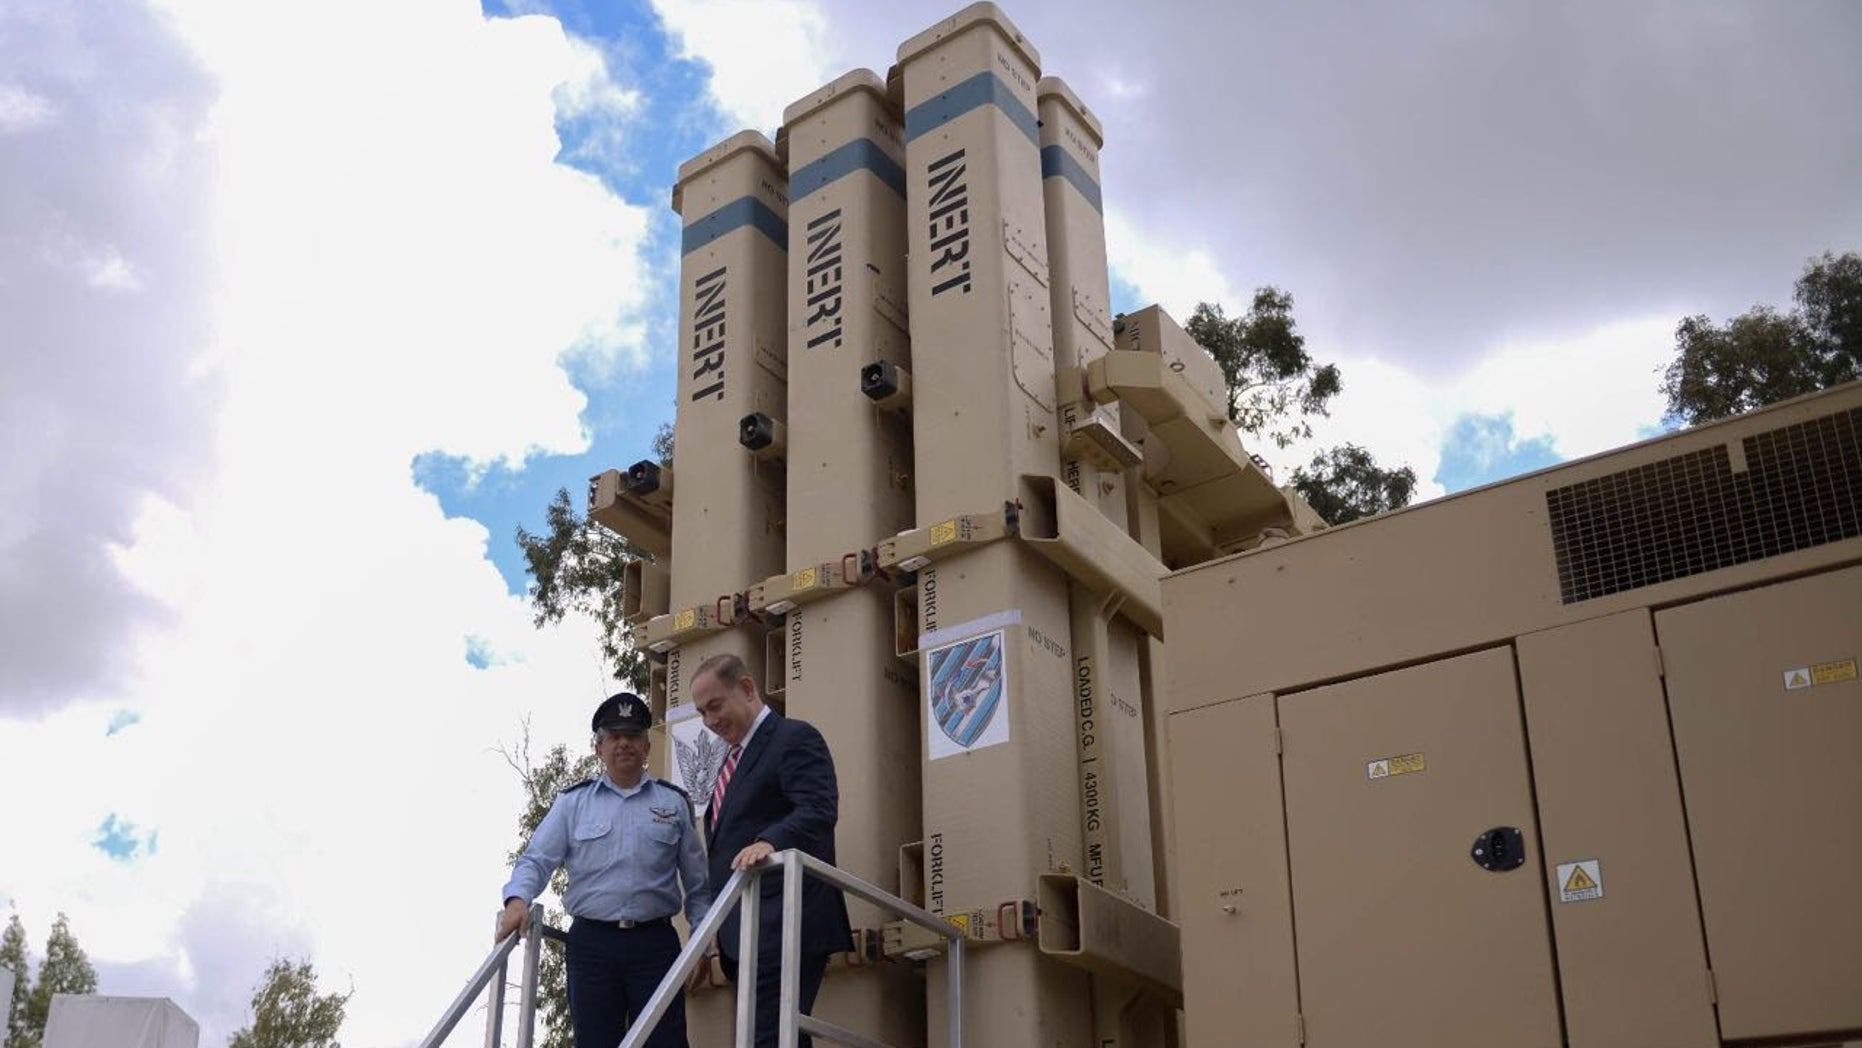 Israeli Prime Minister Benjamin Netanyahu (above, right) gets close to the David's Sling Air Defense System at the inauguration ceremony of the joint U.S.-Israeli missile interceptor at the Hatzor Air Base, Israel, on April 2, 2017. (CREDIT: Israel Defense Forces)